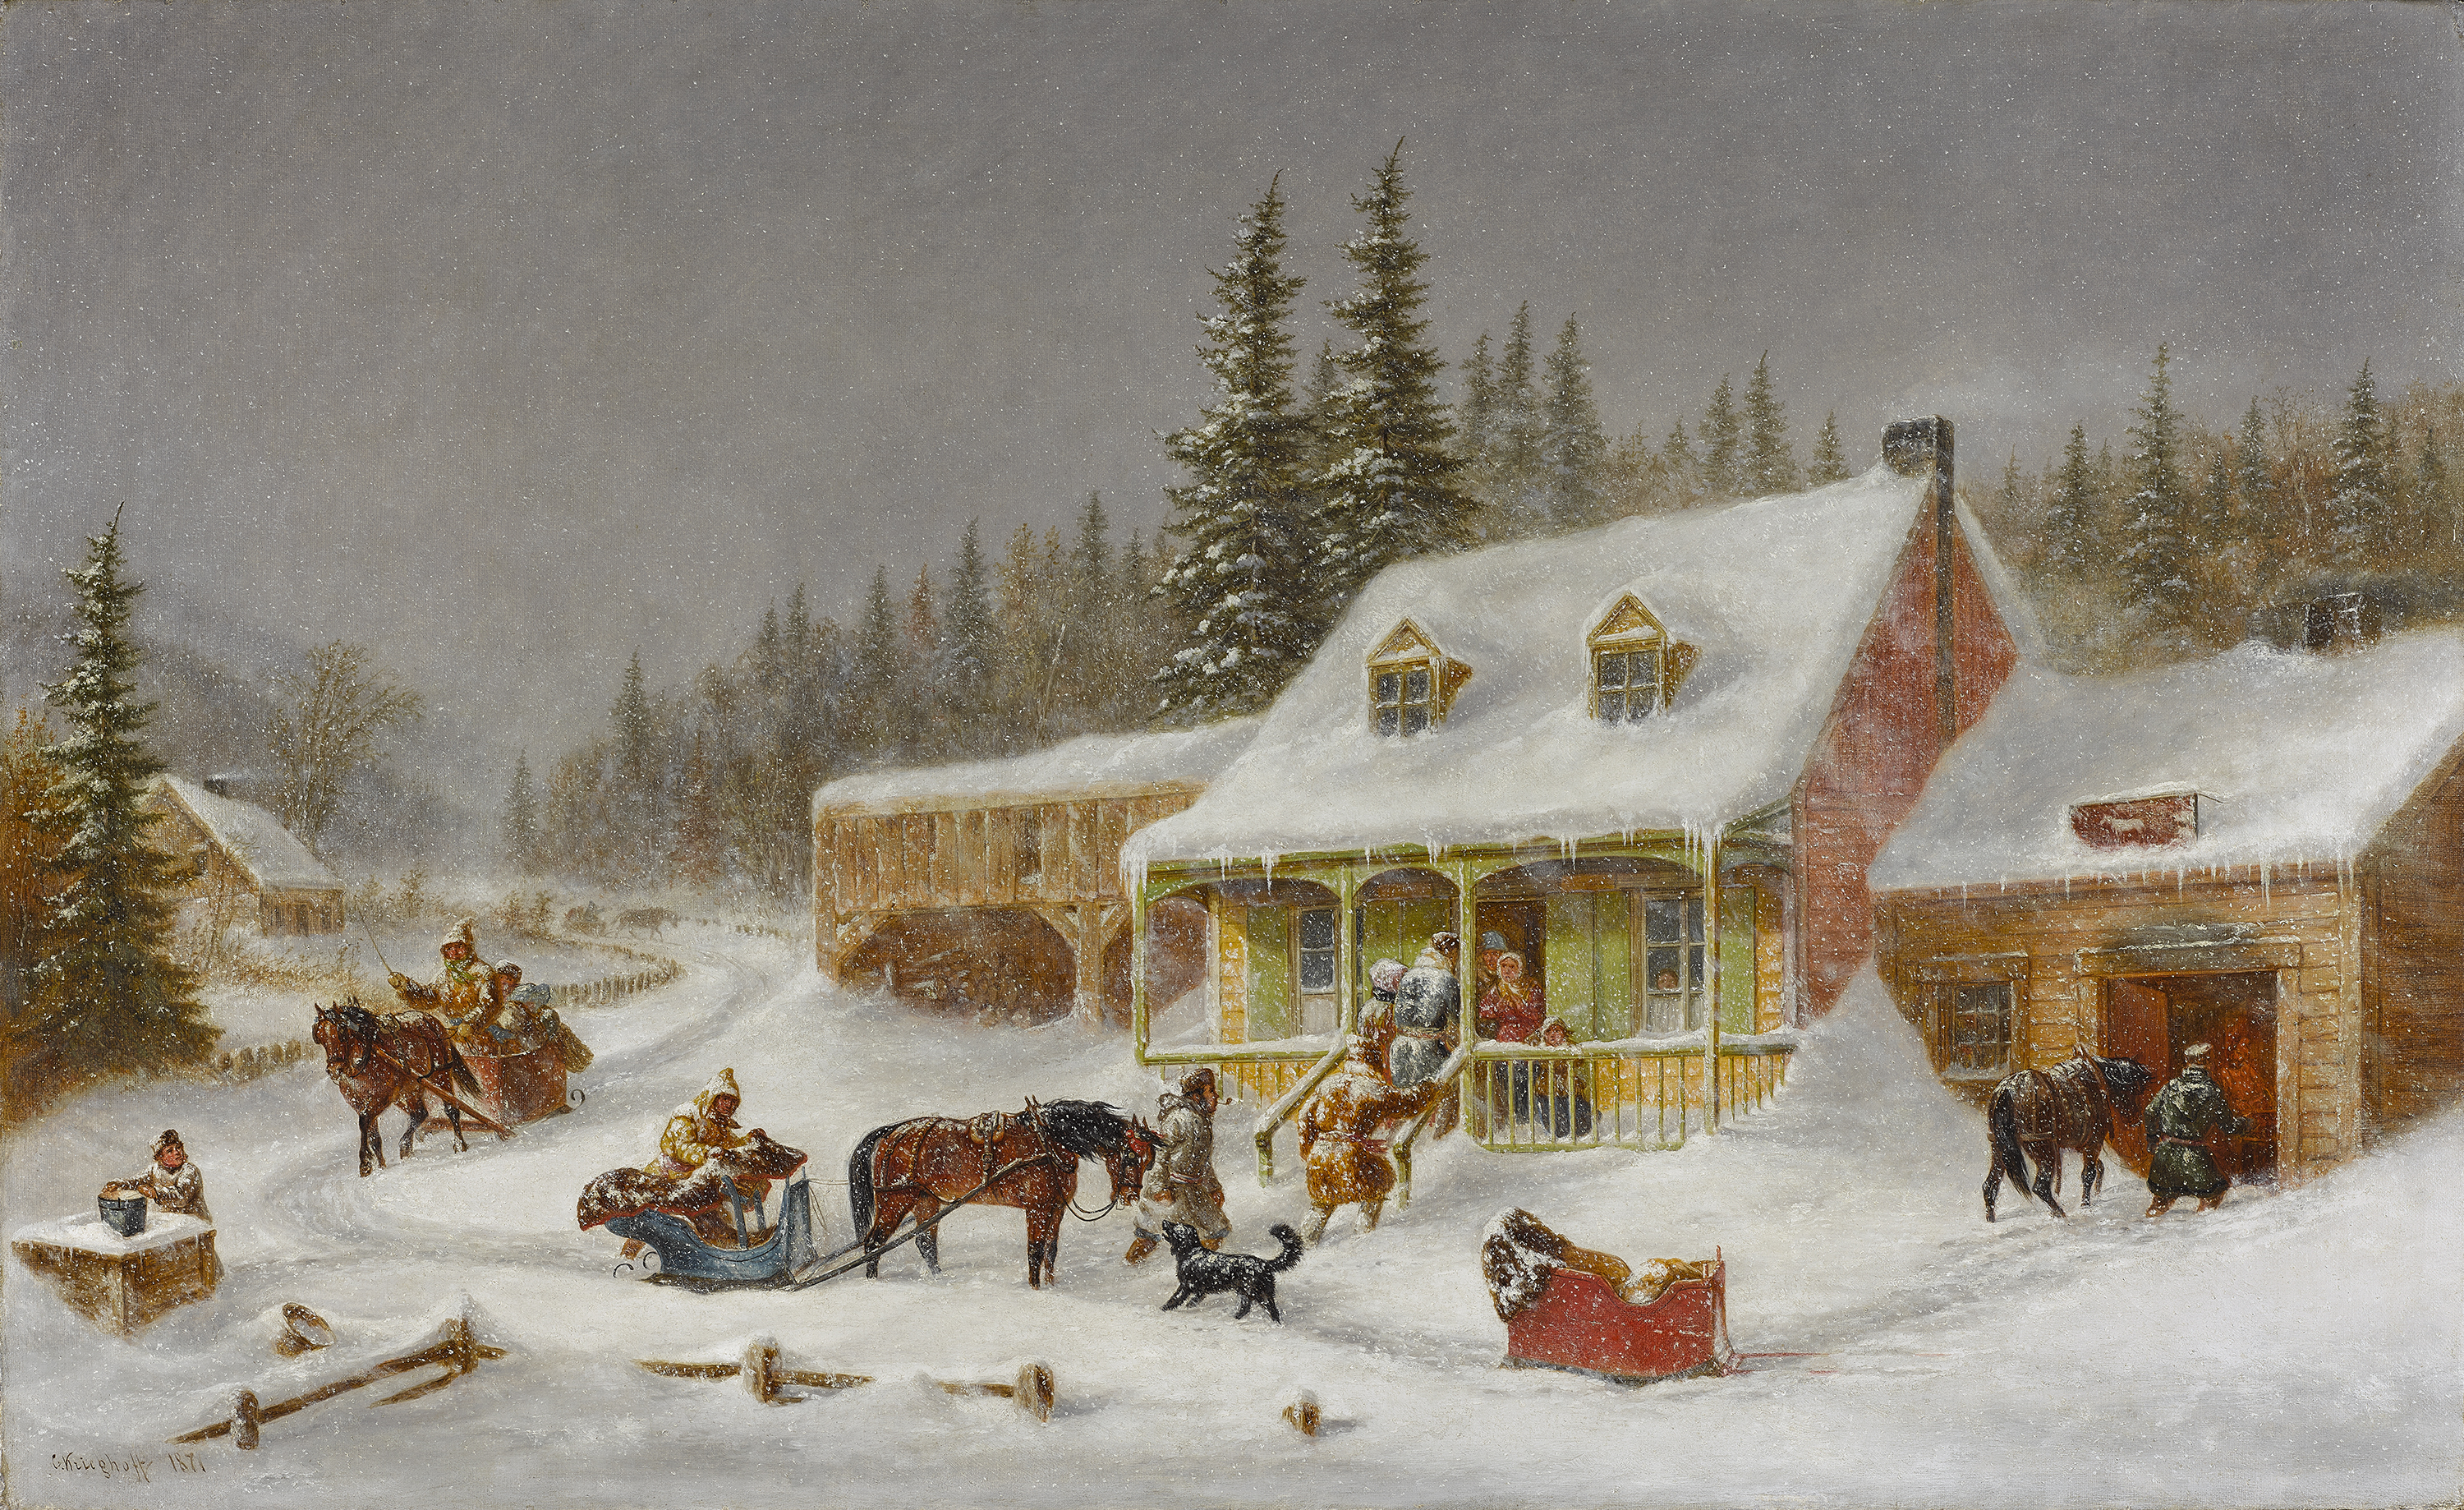 This genre scene represents a traditional French-Canadian house flanked by a blacksmith's shop. On the left, horse-drawn sleighs are arriving. Another is stopped in front of the house. A man is leading his horse into the forge, and several people are hurrying toward the house.